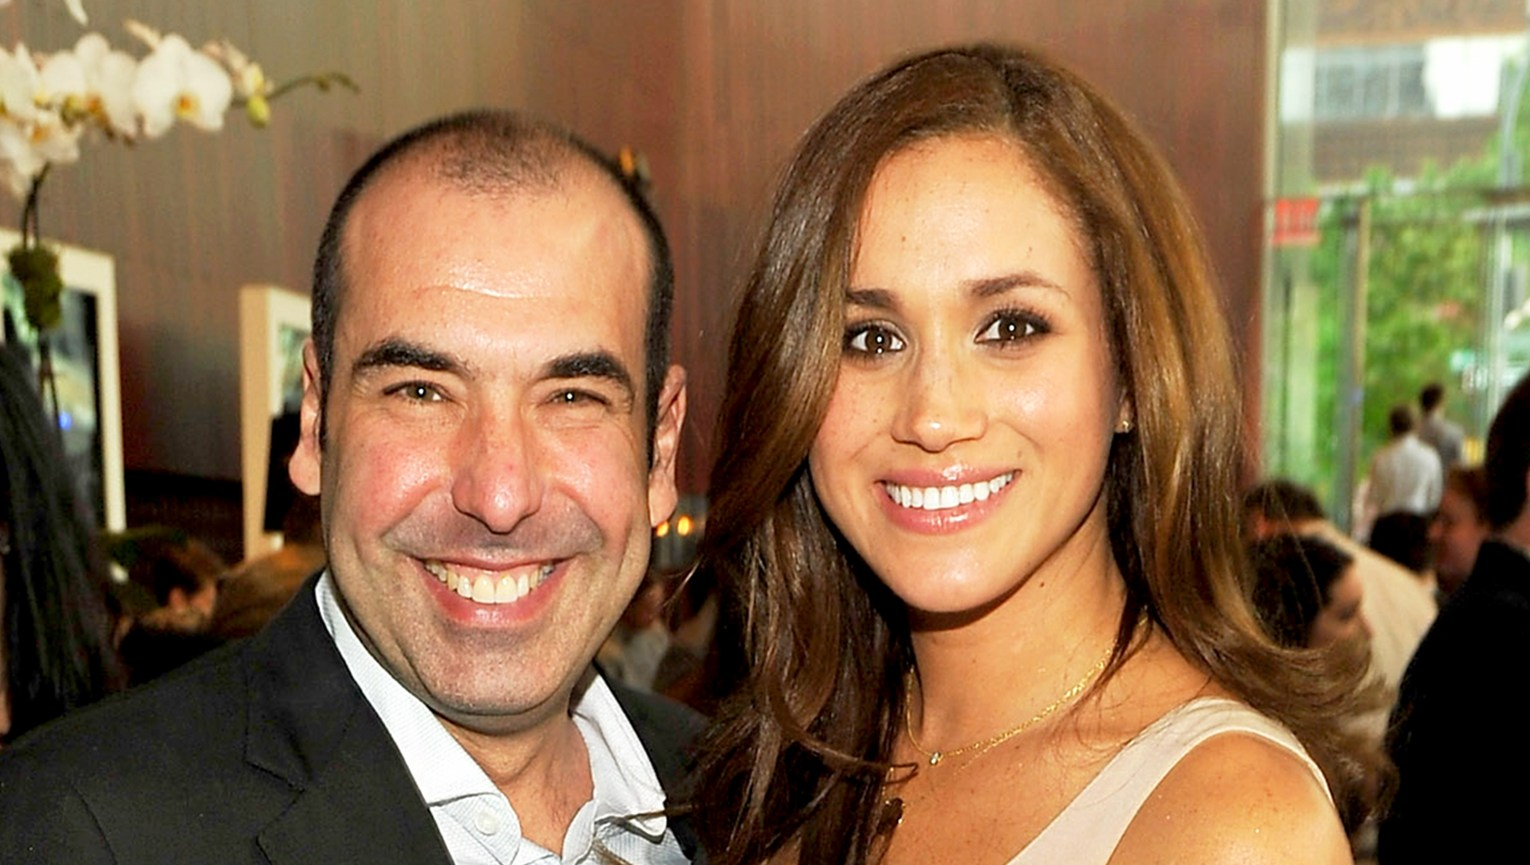 Rick Hoffman and Meghan Markle attend USA Network Upfront 2012 after party at Alice Tully Hall at Lincoln Center in New York City.